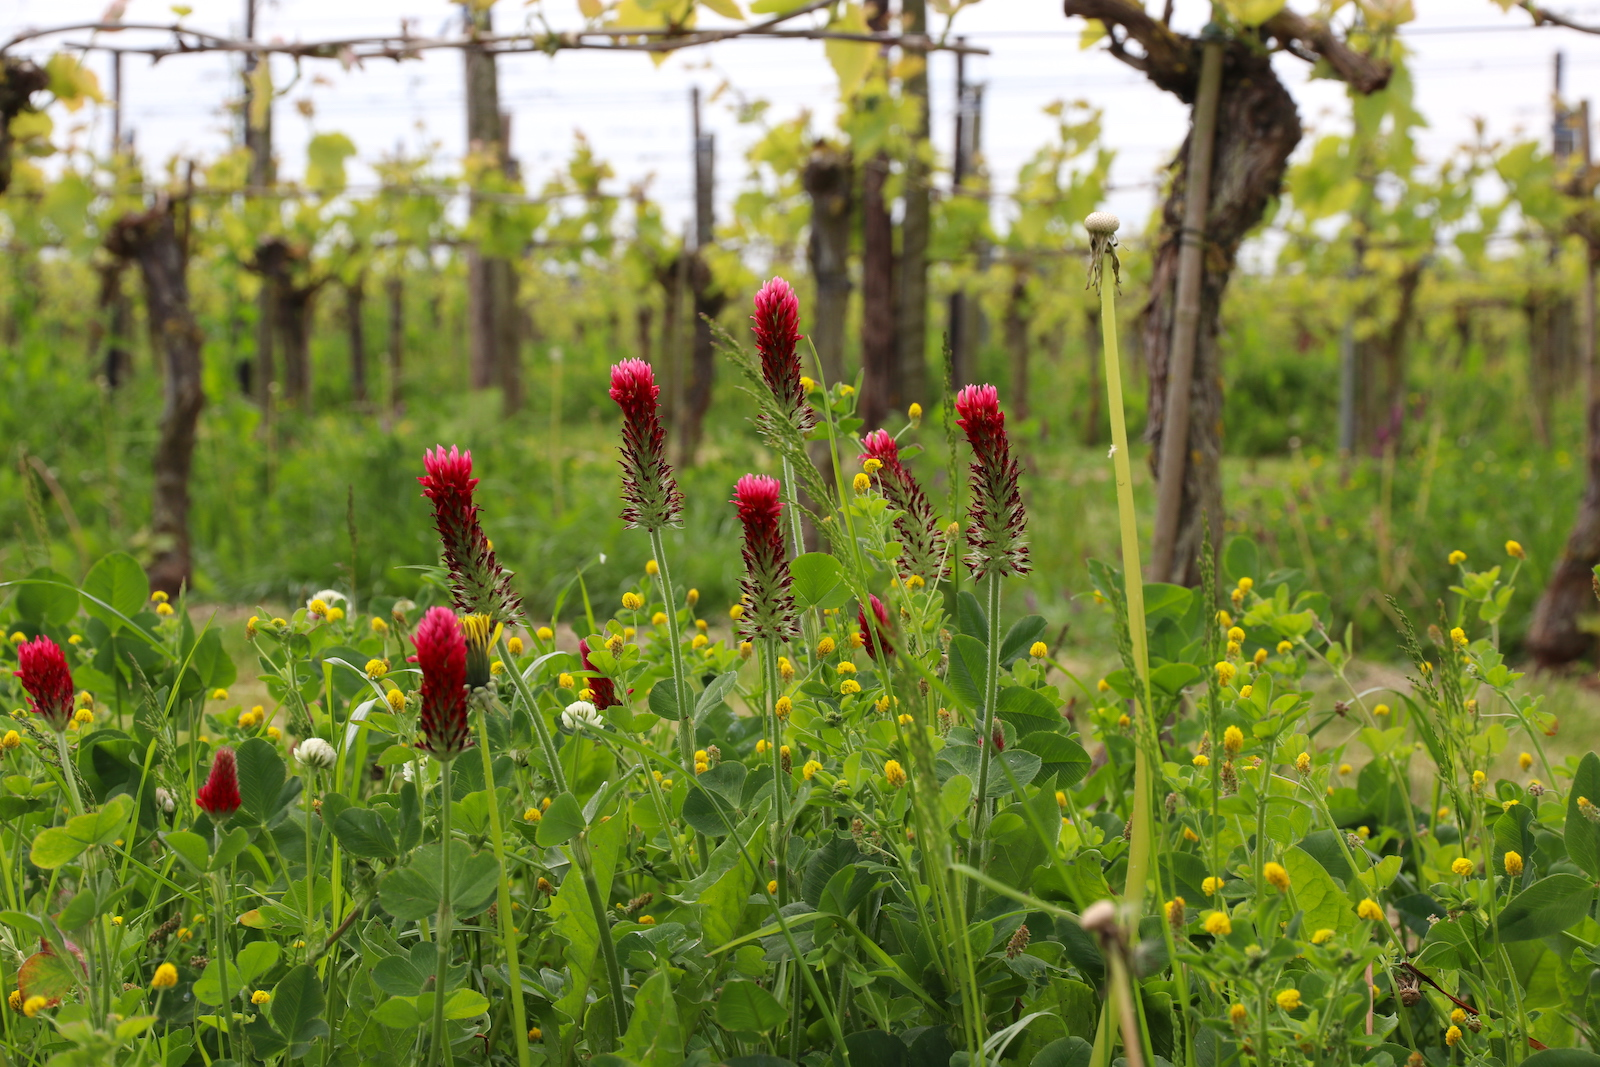 The sustainable wine growing practices of Betuws Wijndomein also results in colorful vineyards.